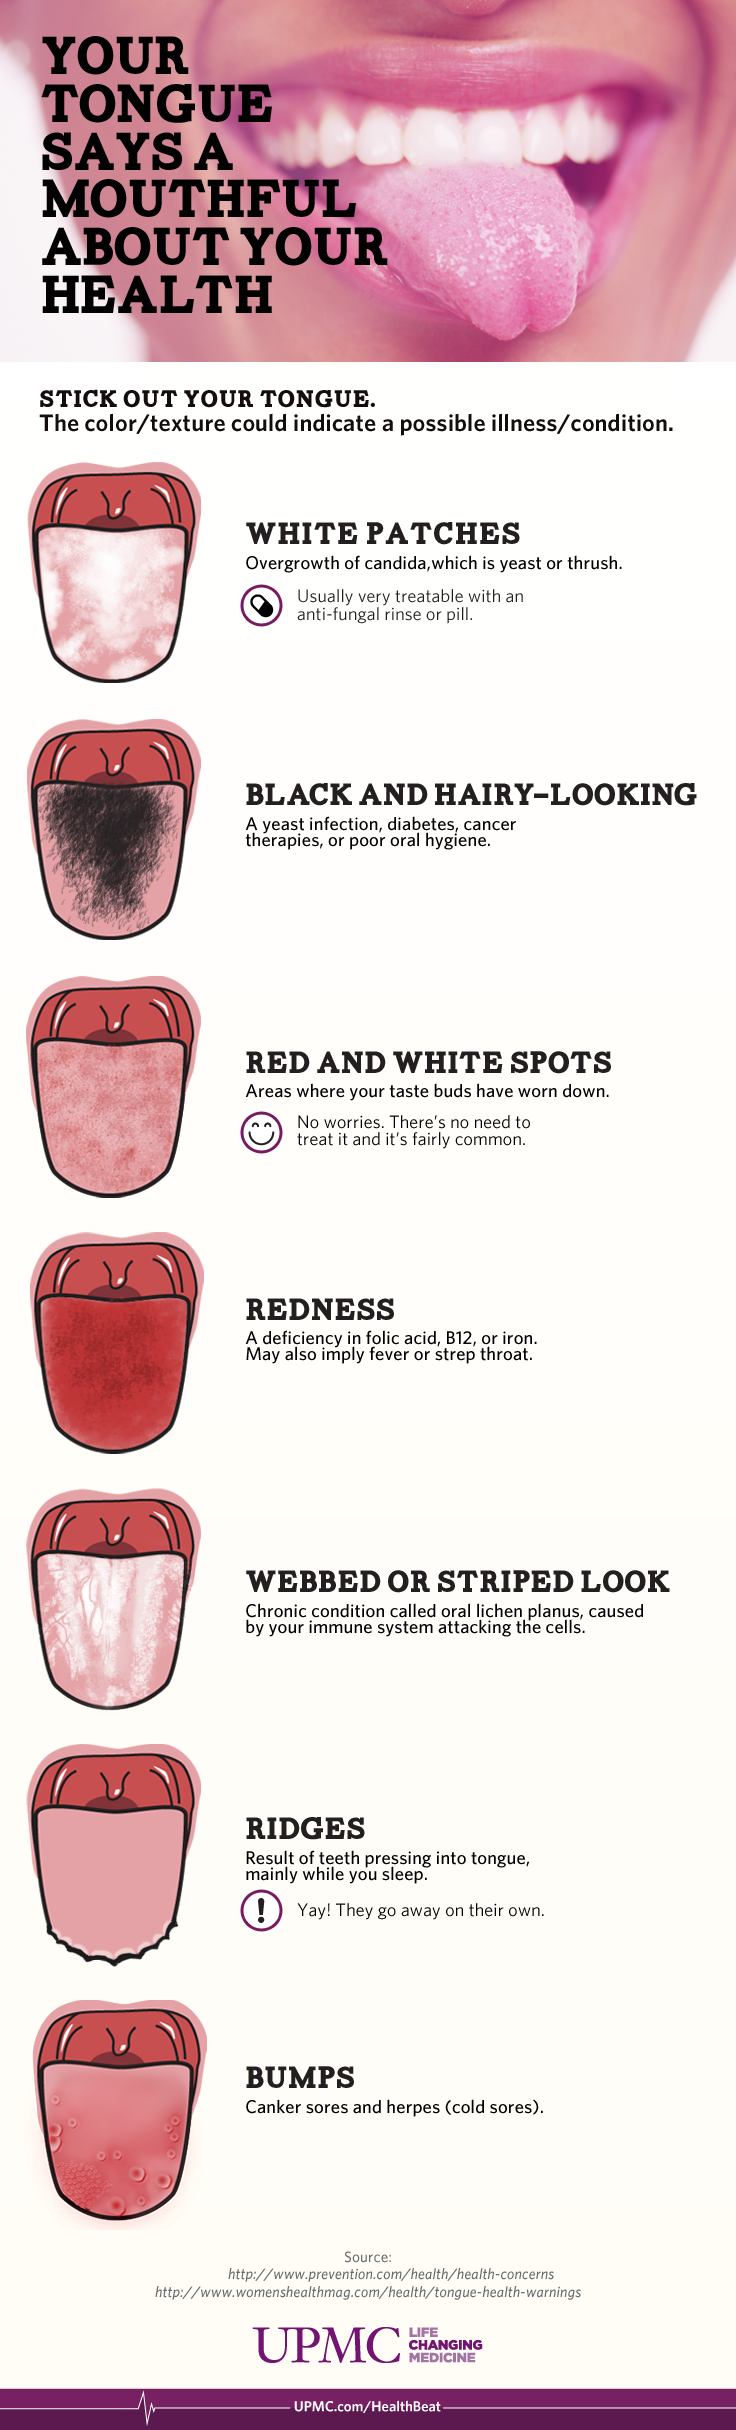 What Does Your Tongue Say About Your Health Infographic Upmc